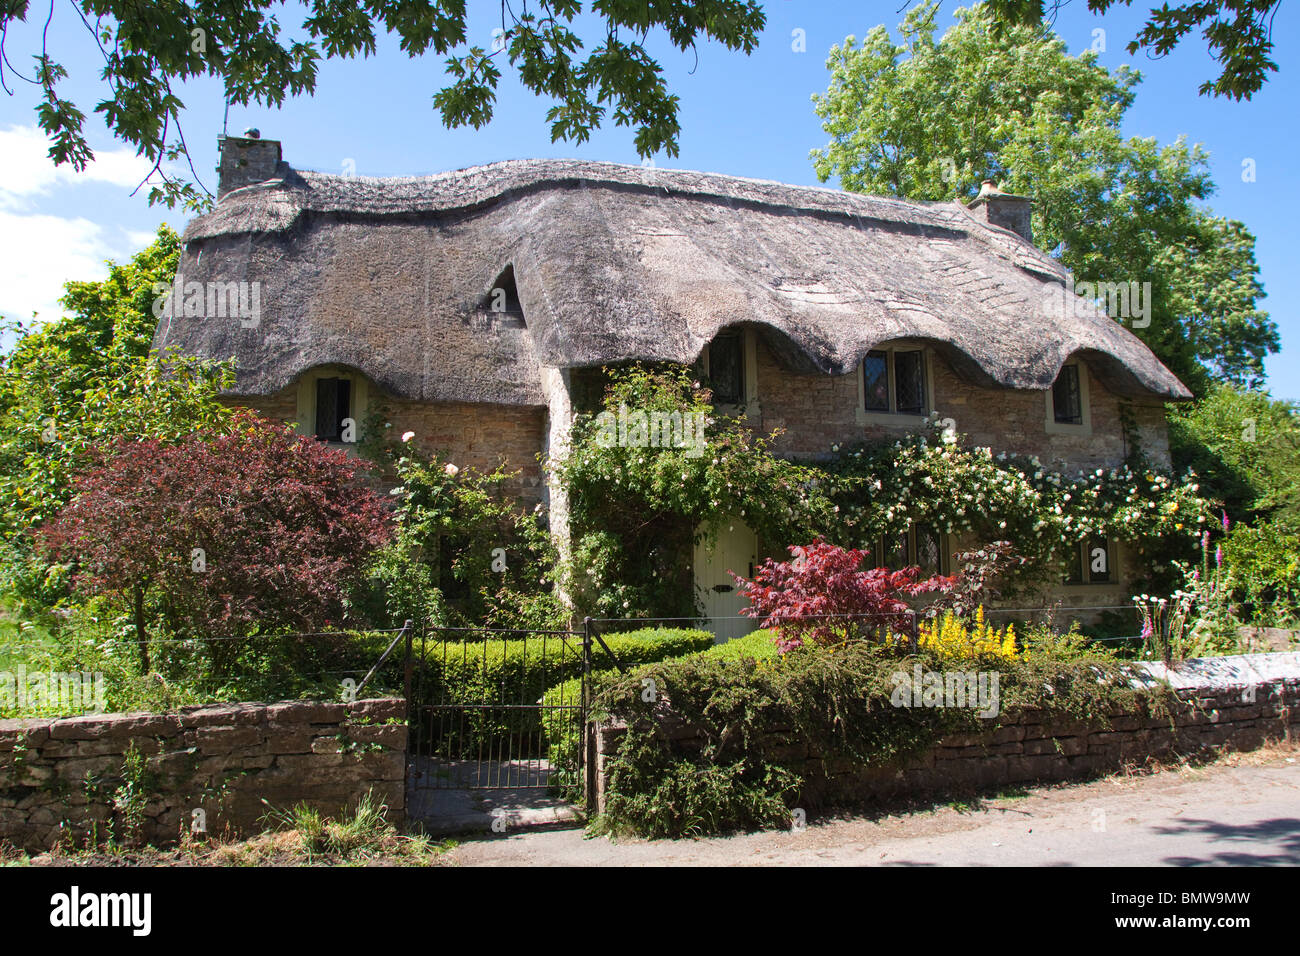 Traditional Thatched Roof Cottage In Merthyr Mawr Merthyr